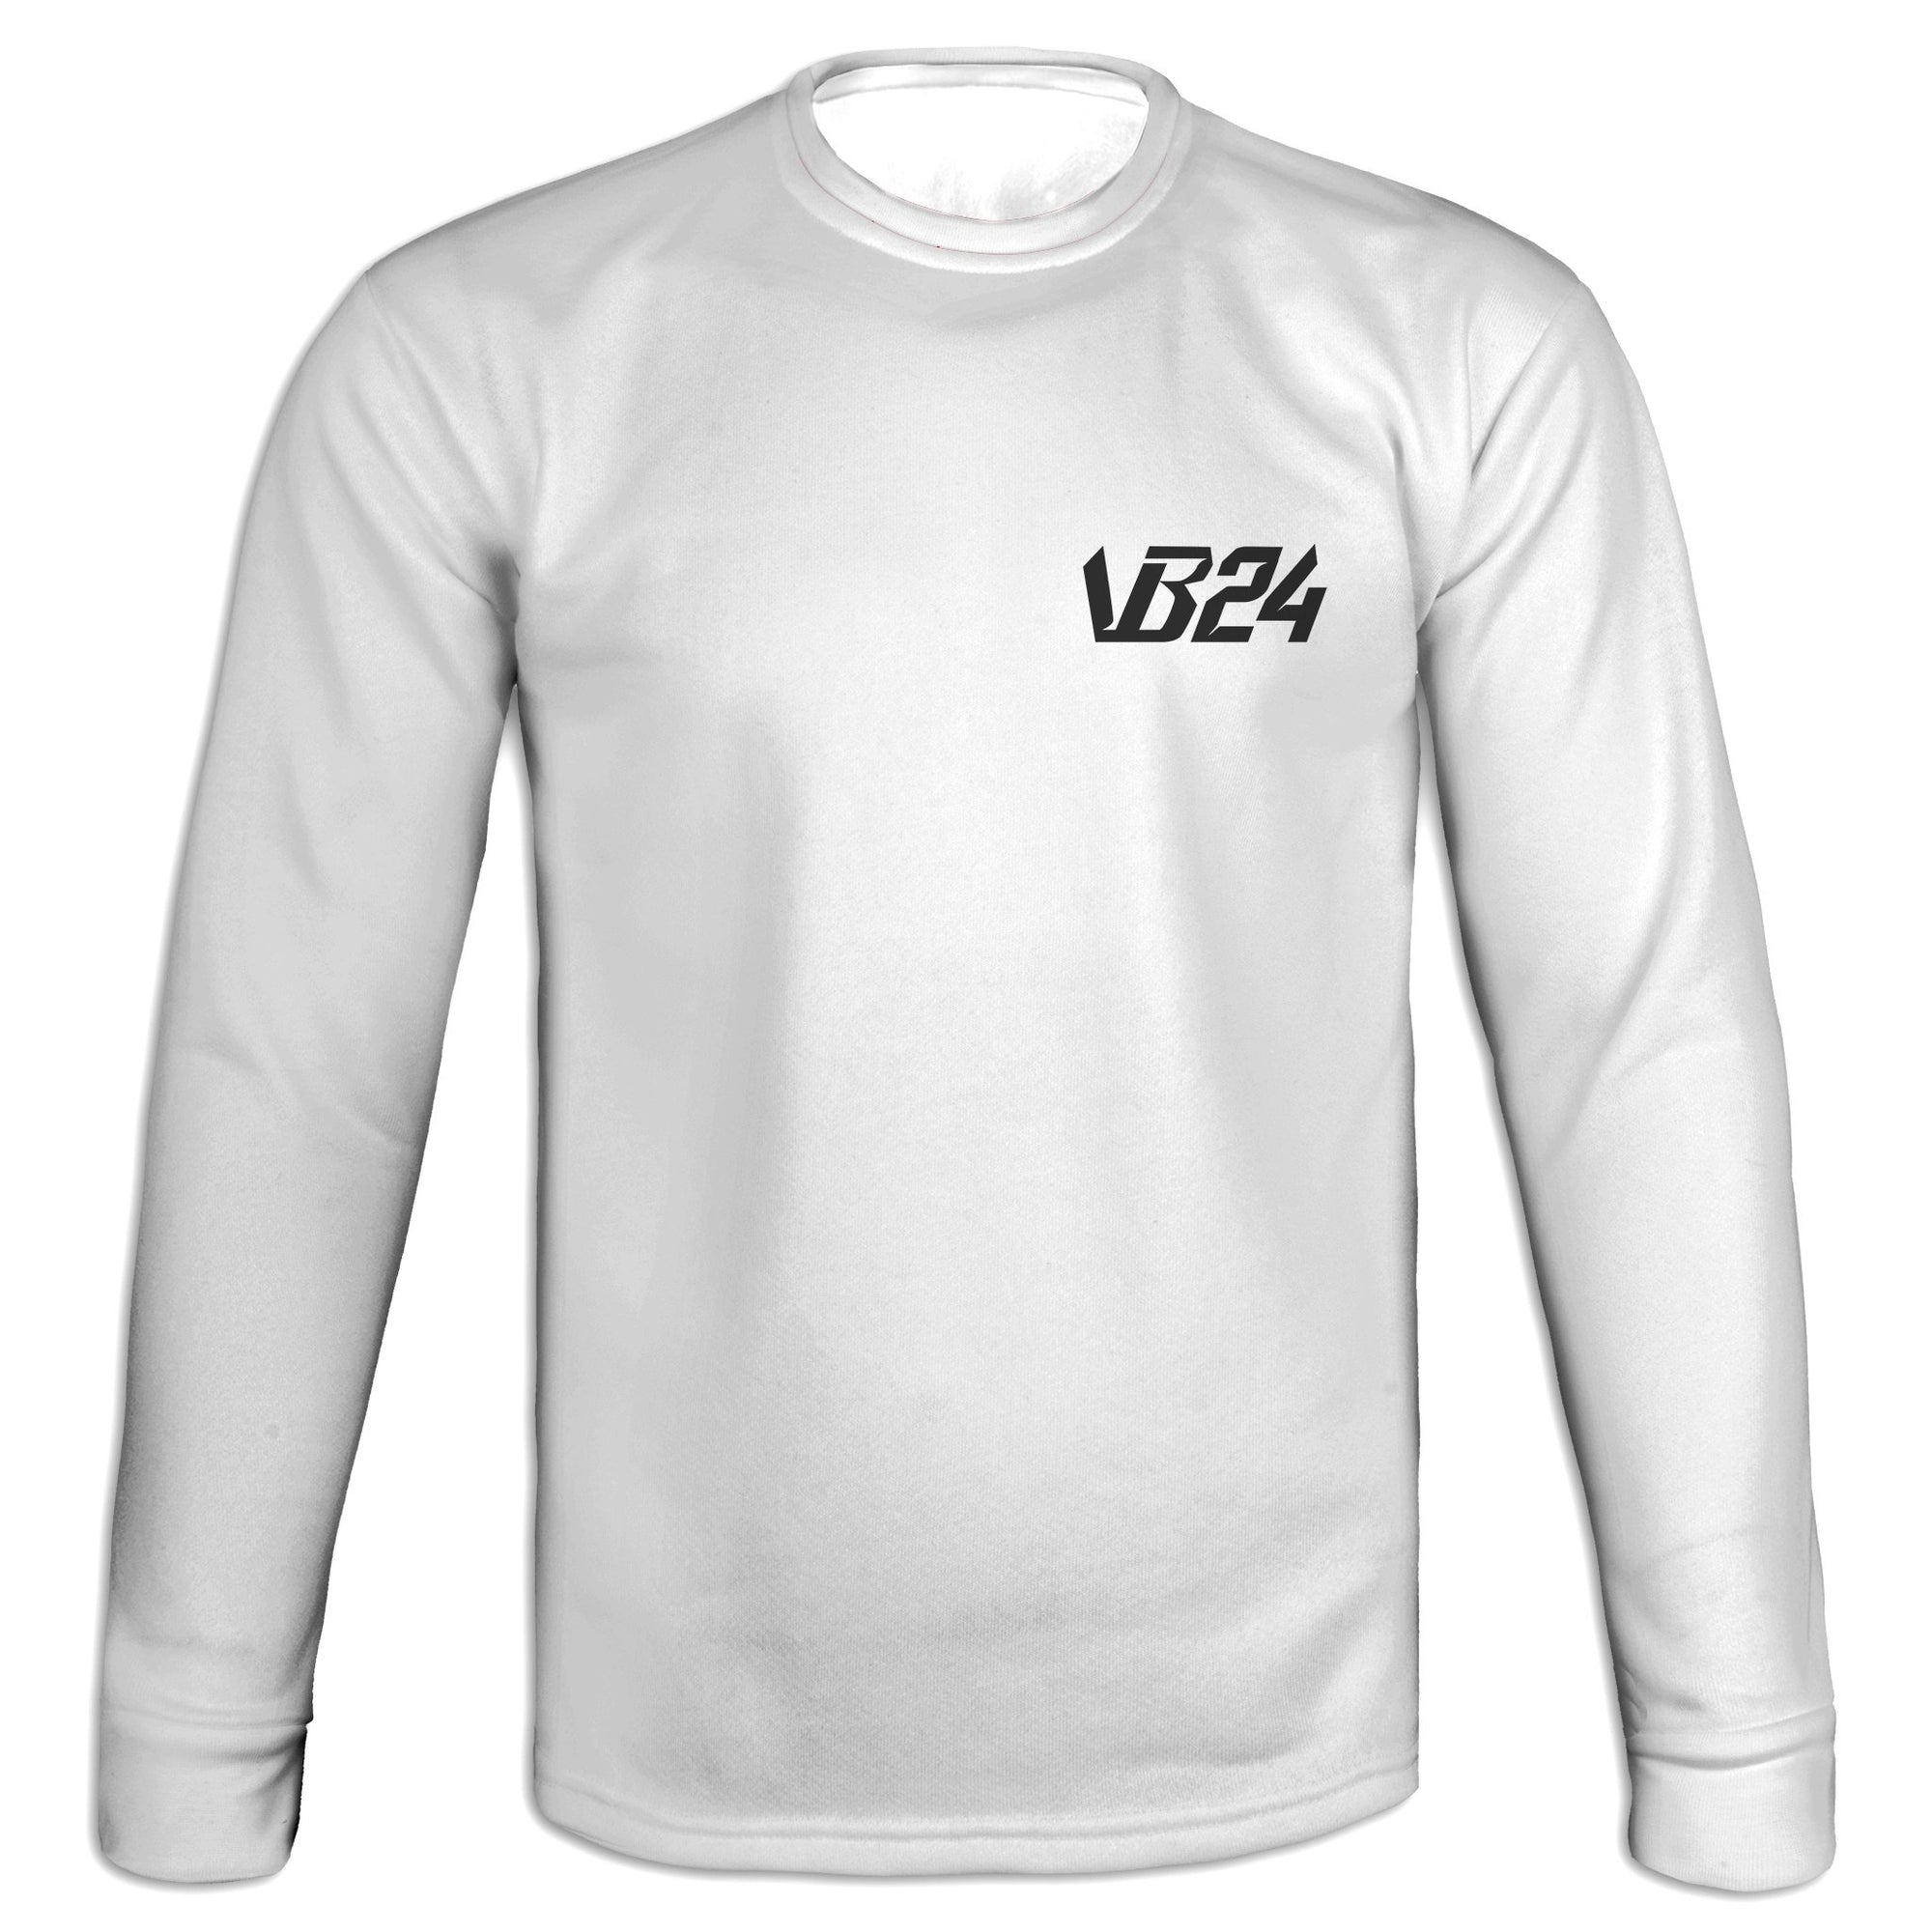 Twenty Four - White Sweatshirt | vonbellshop.com